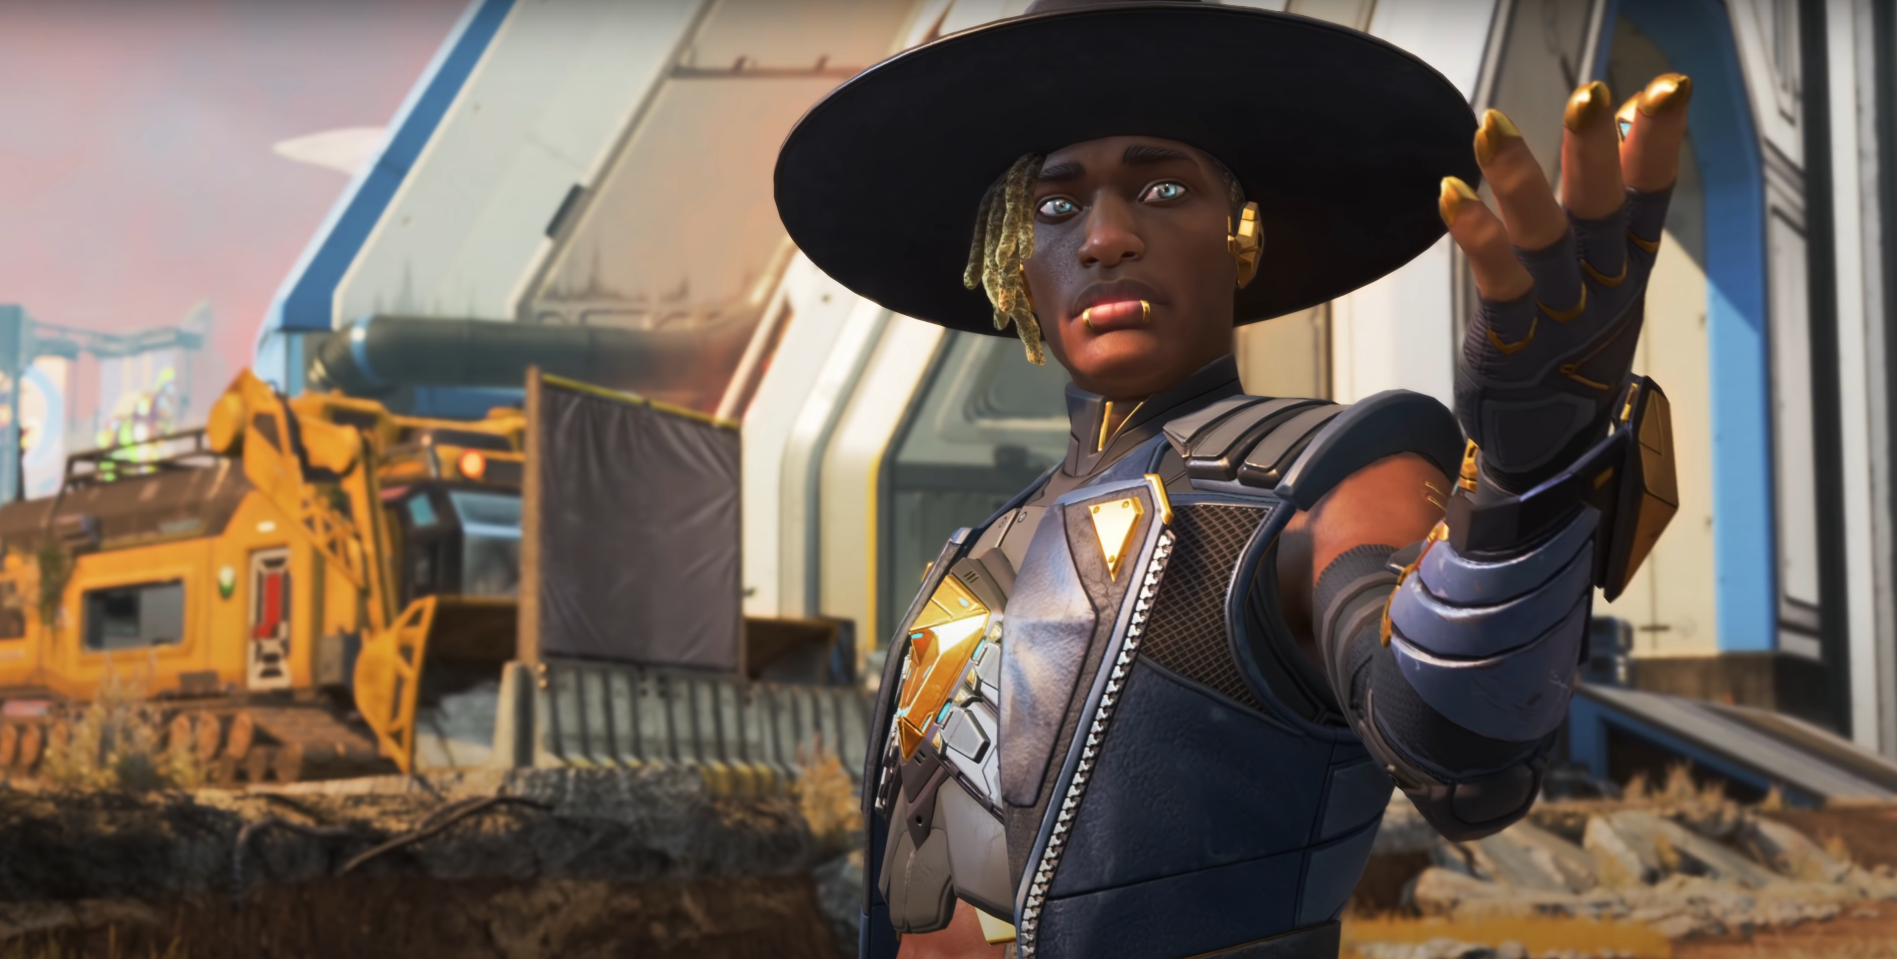 Seer from Apex Legends showing off in his trailer